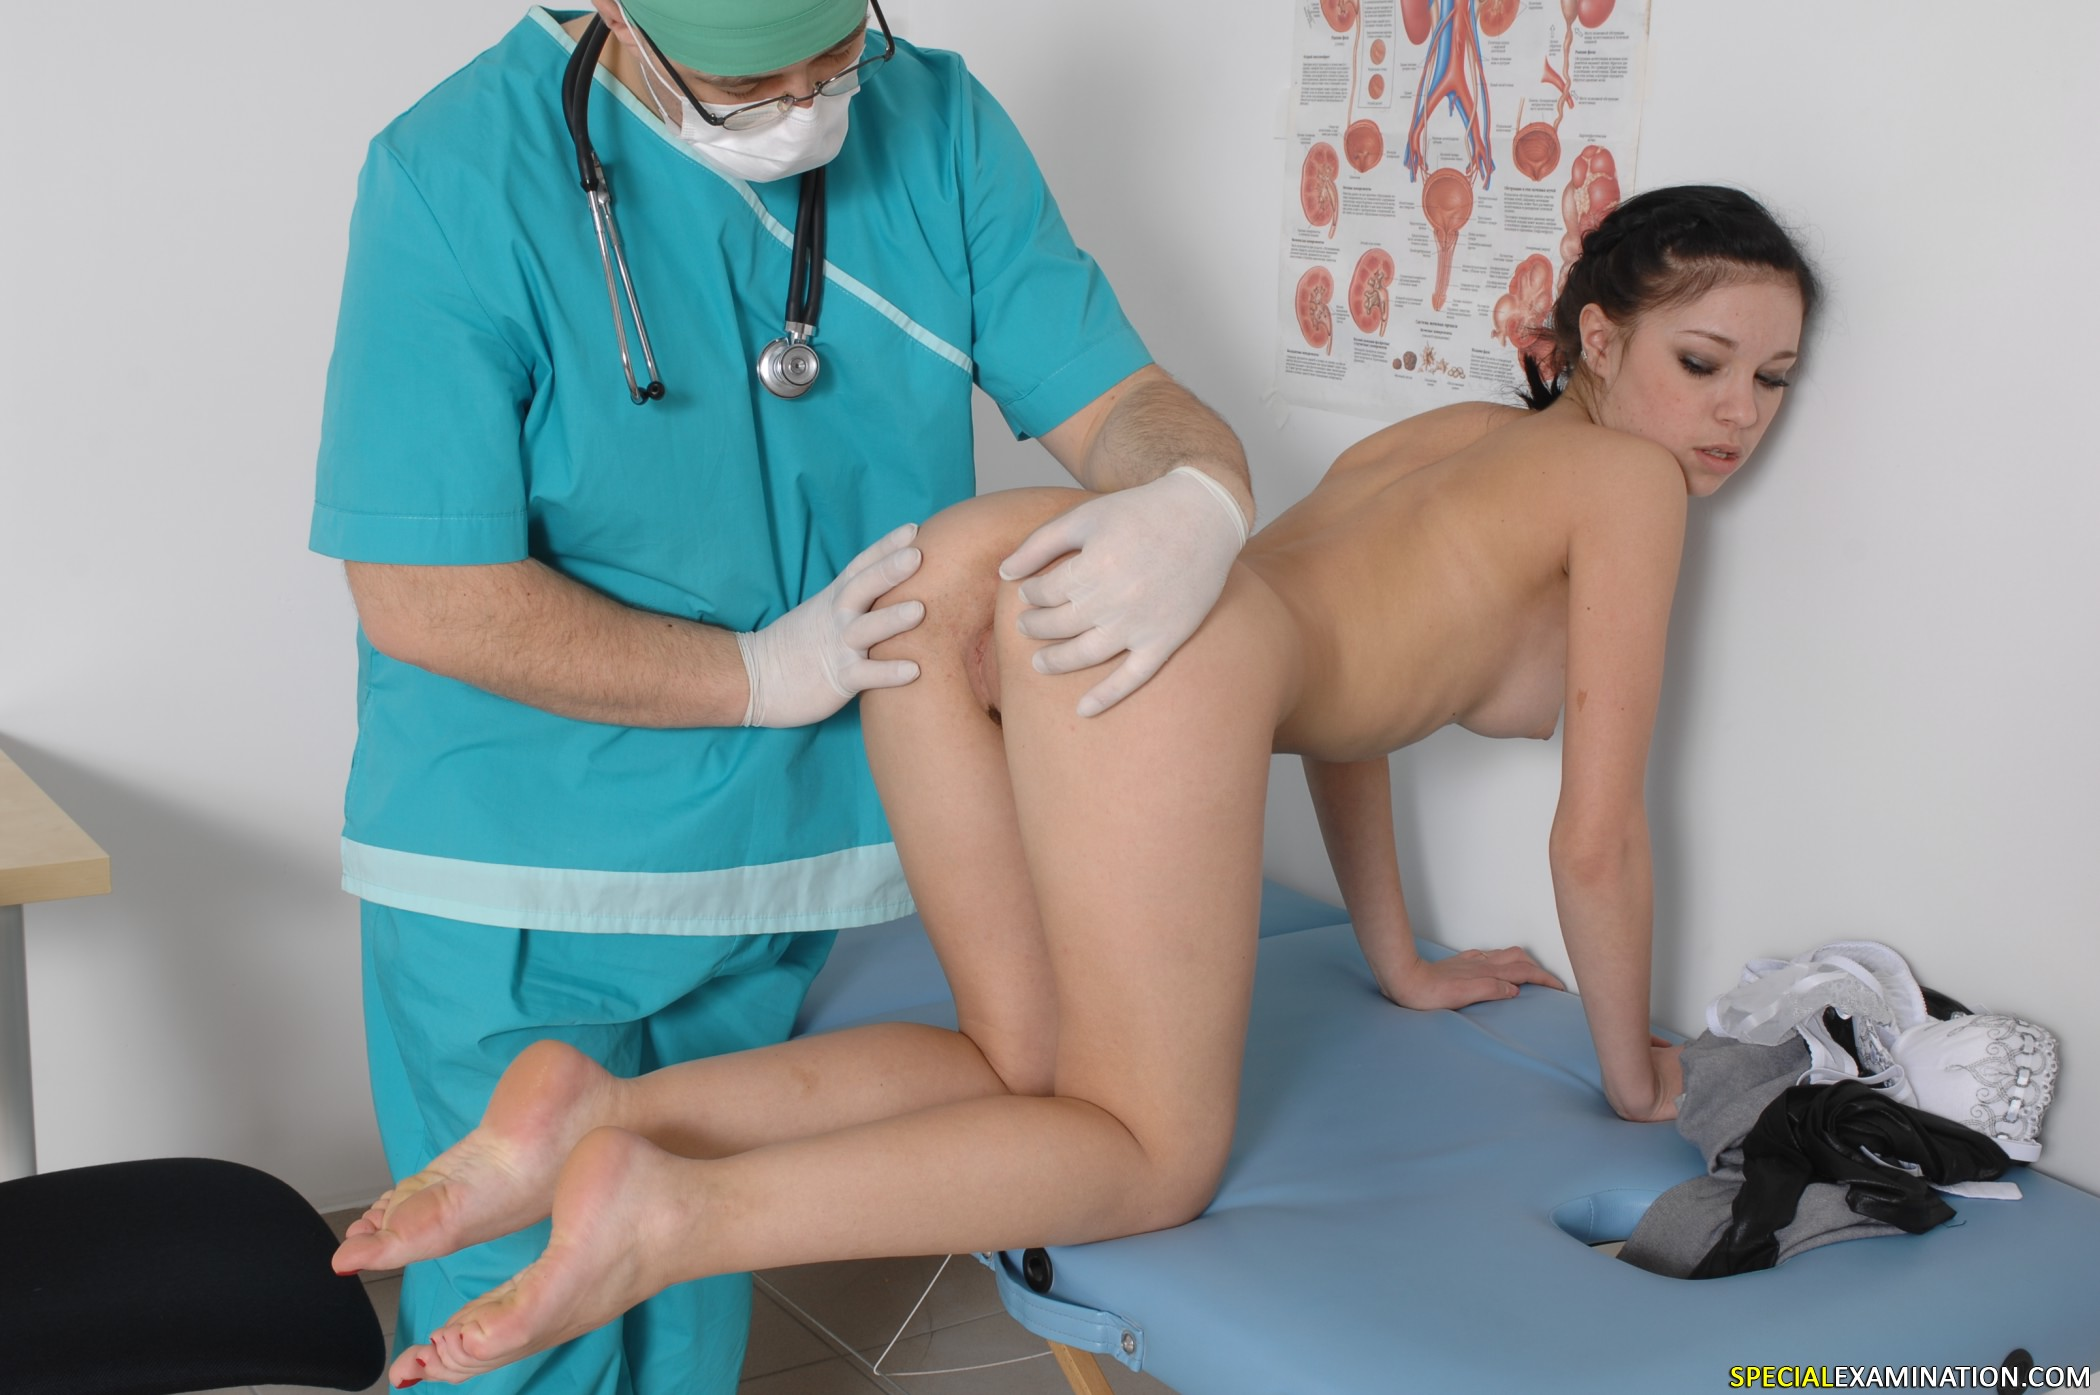 Doctor examining female nude patient